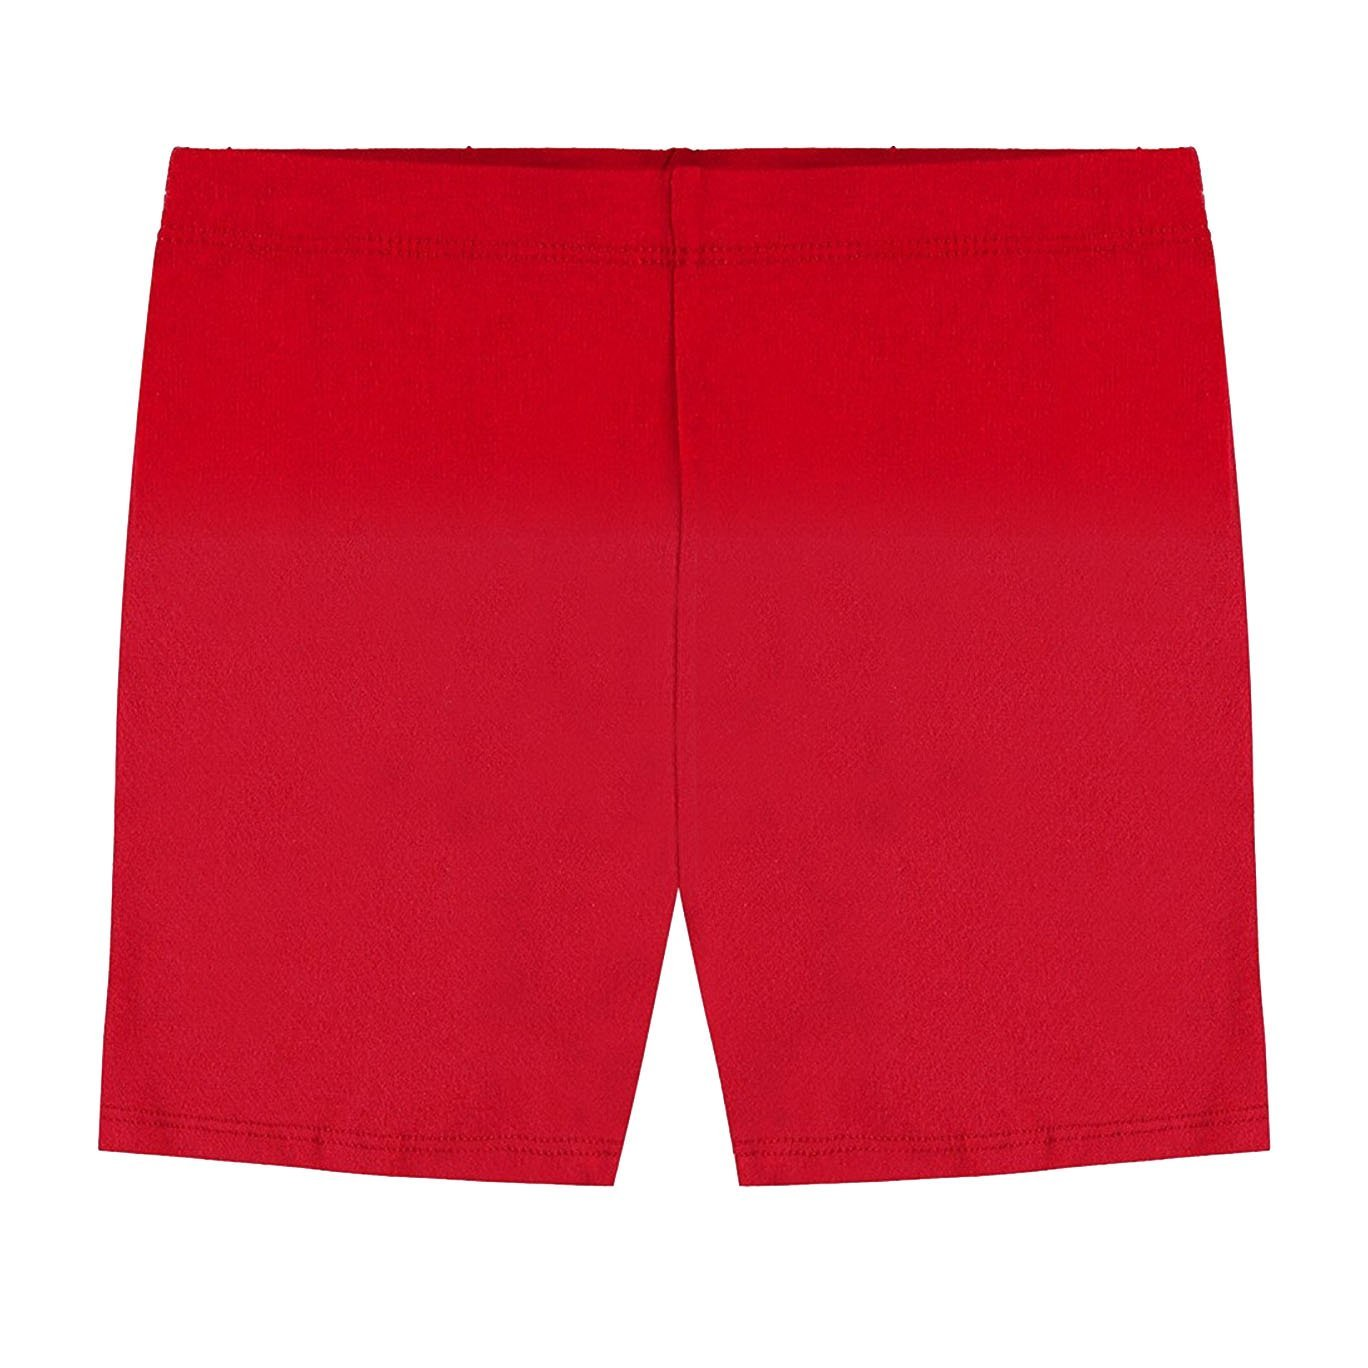 Hollywood Star Fashion Khanomak Girls' Cotton Bike Shorts for Sports, School Uniform Under Skirts (Sizes 2T- 12 Yrs) Kh003